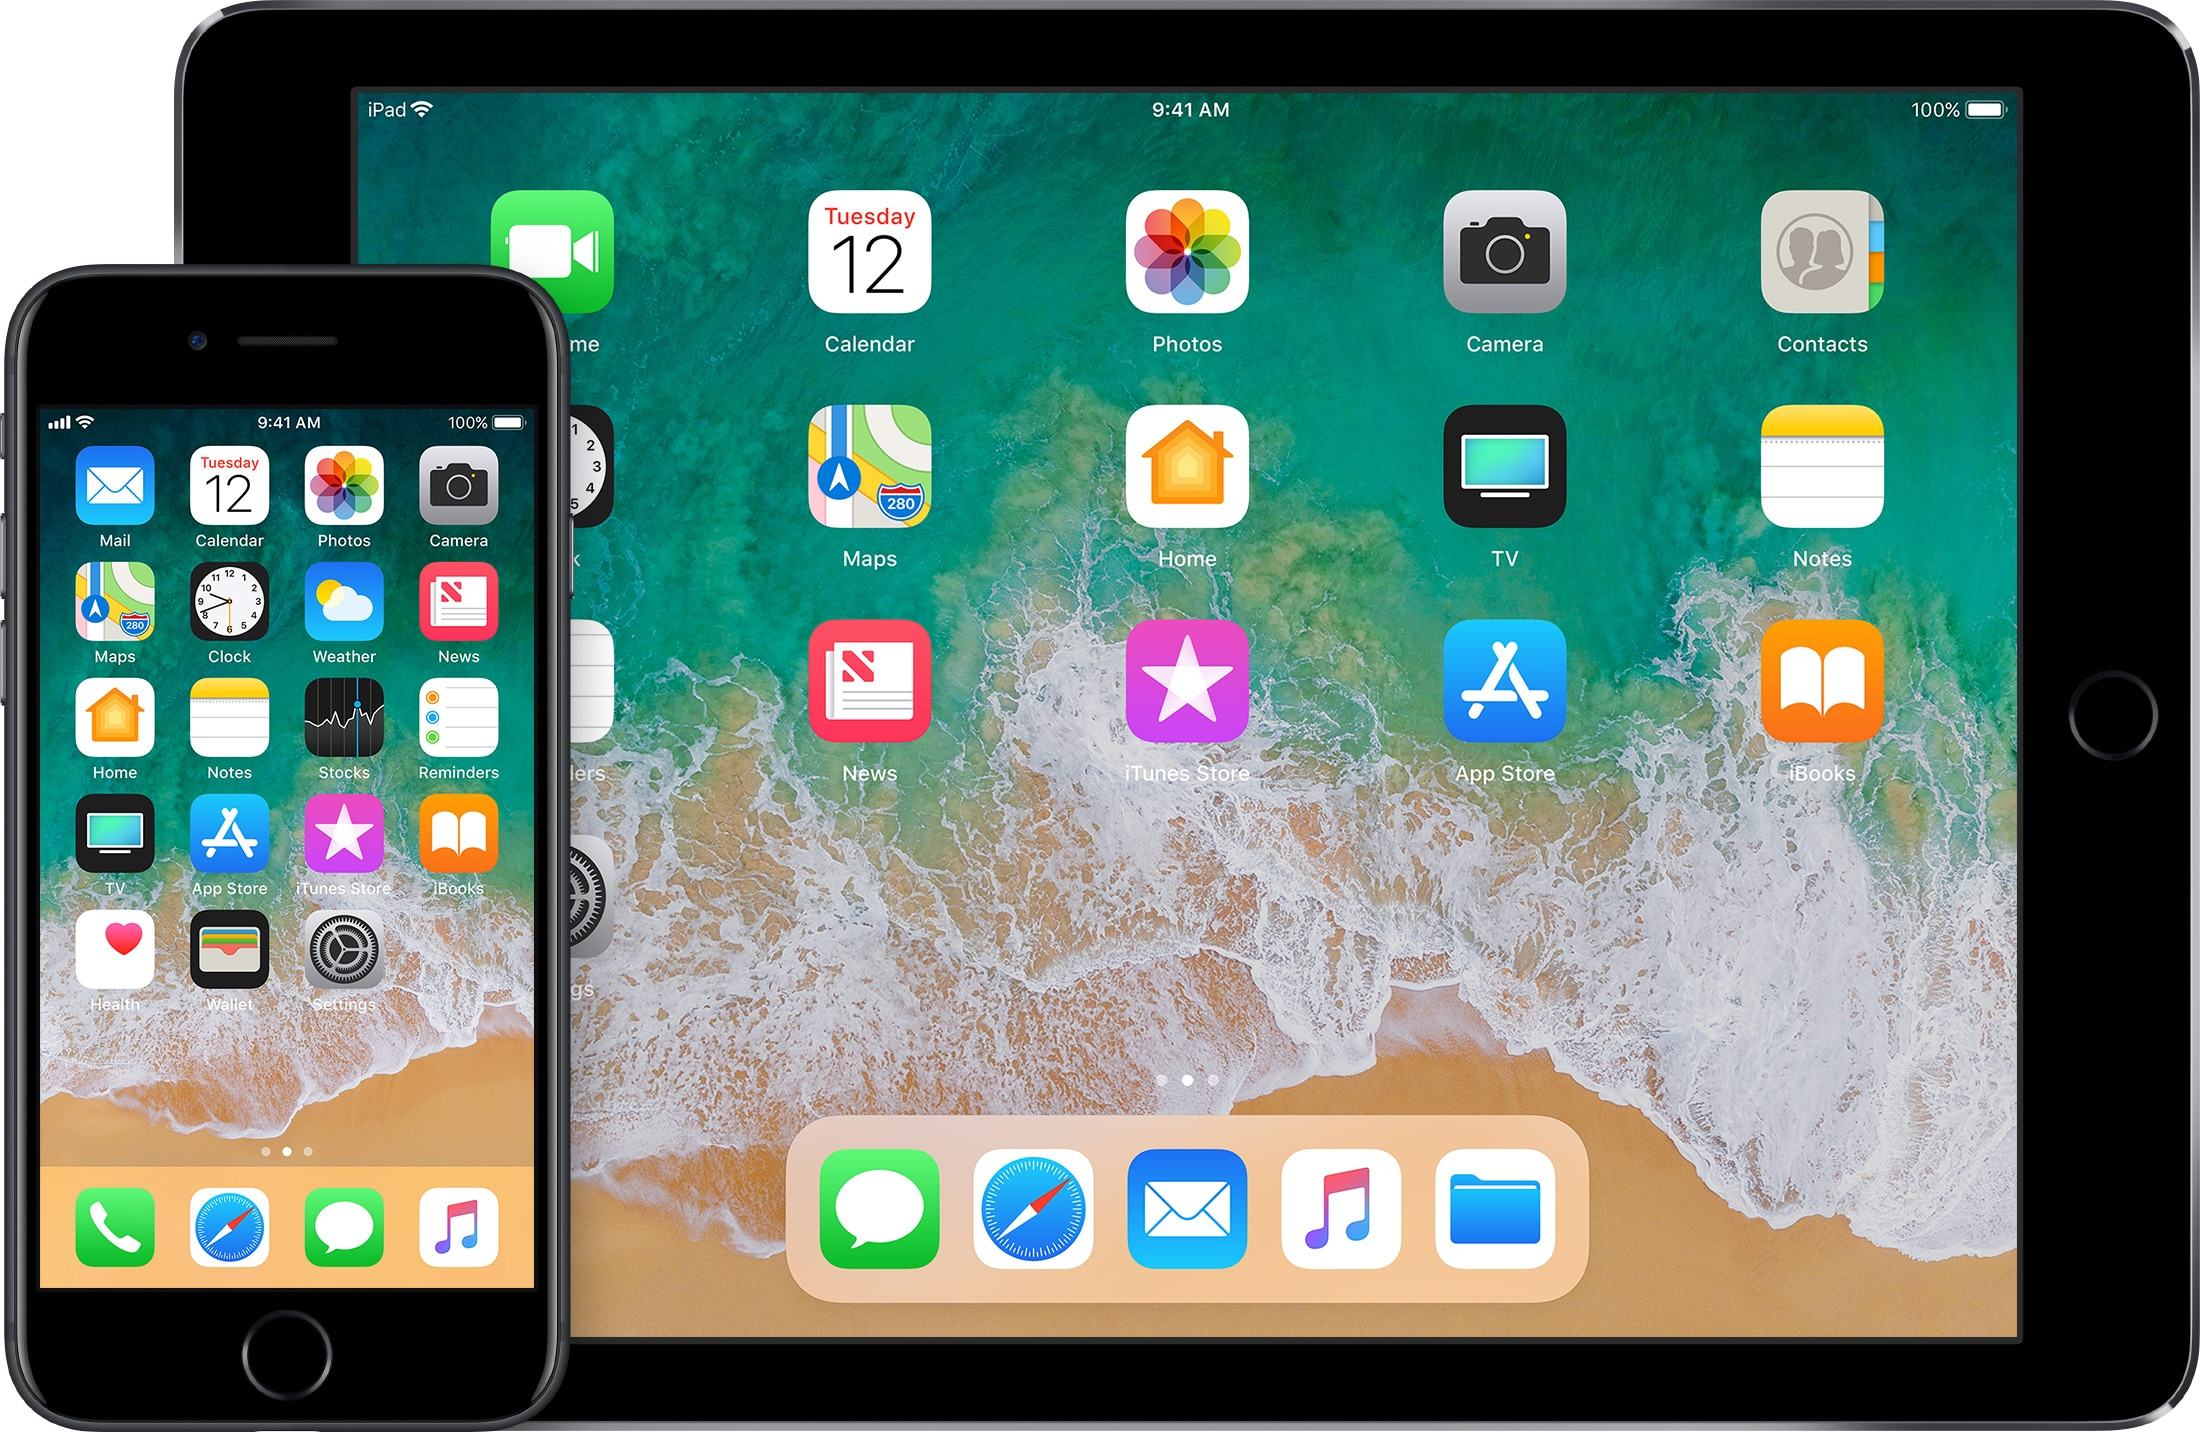 iPad e iPhone rodando o iOS 11